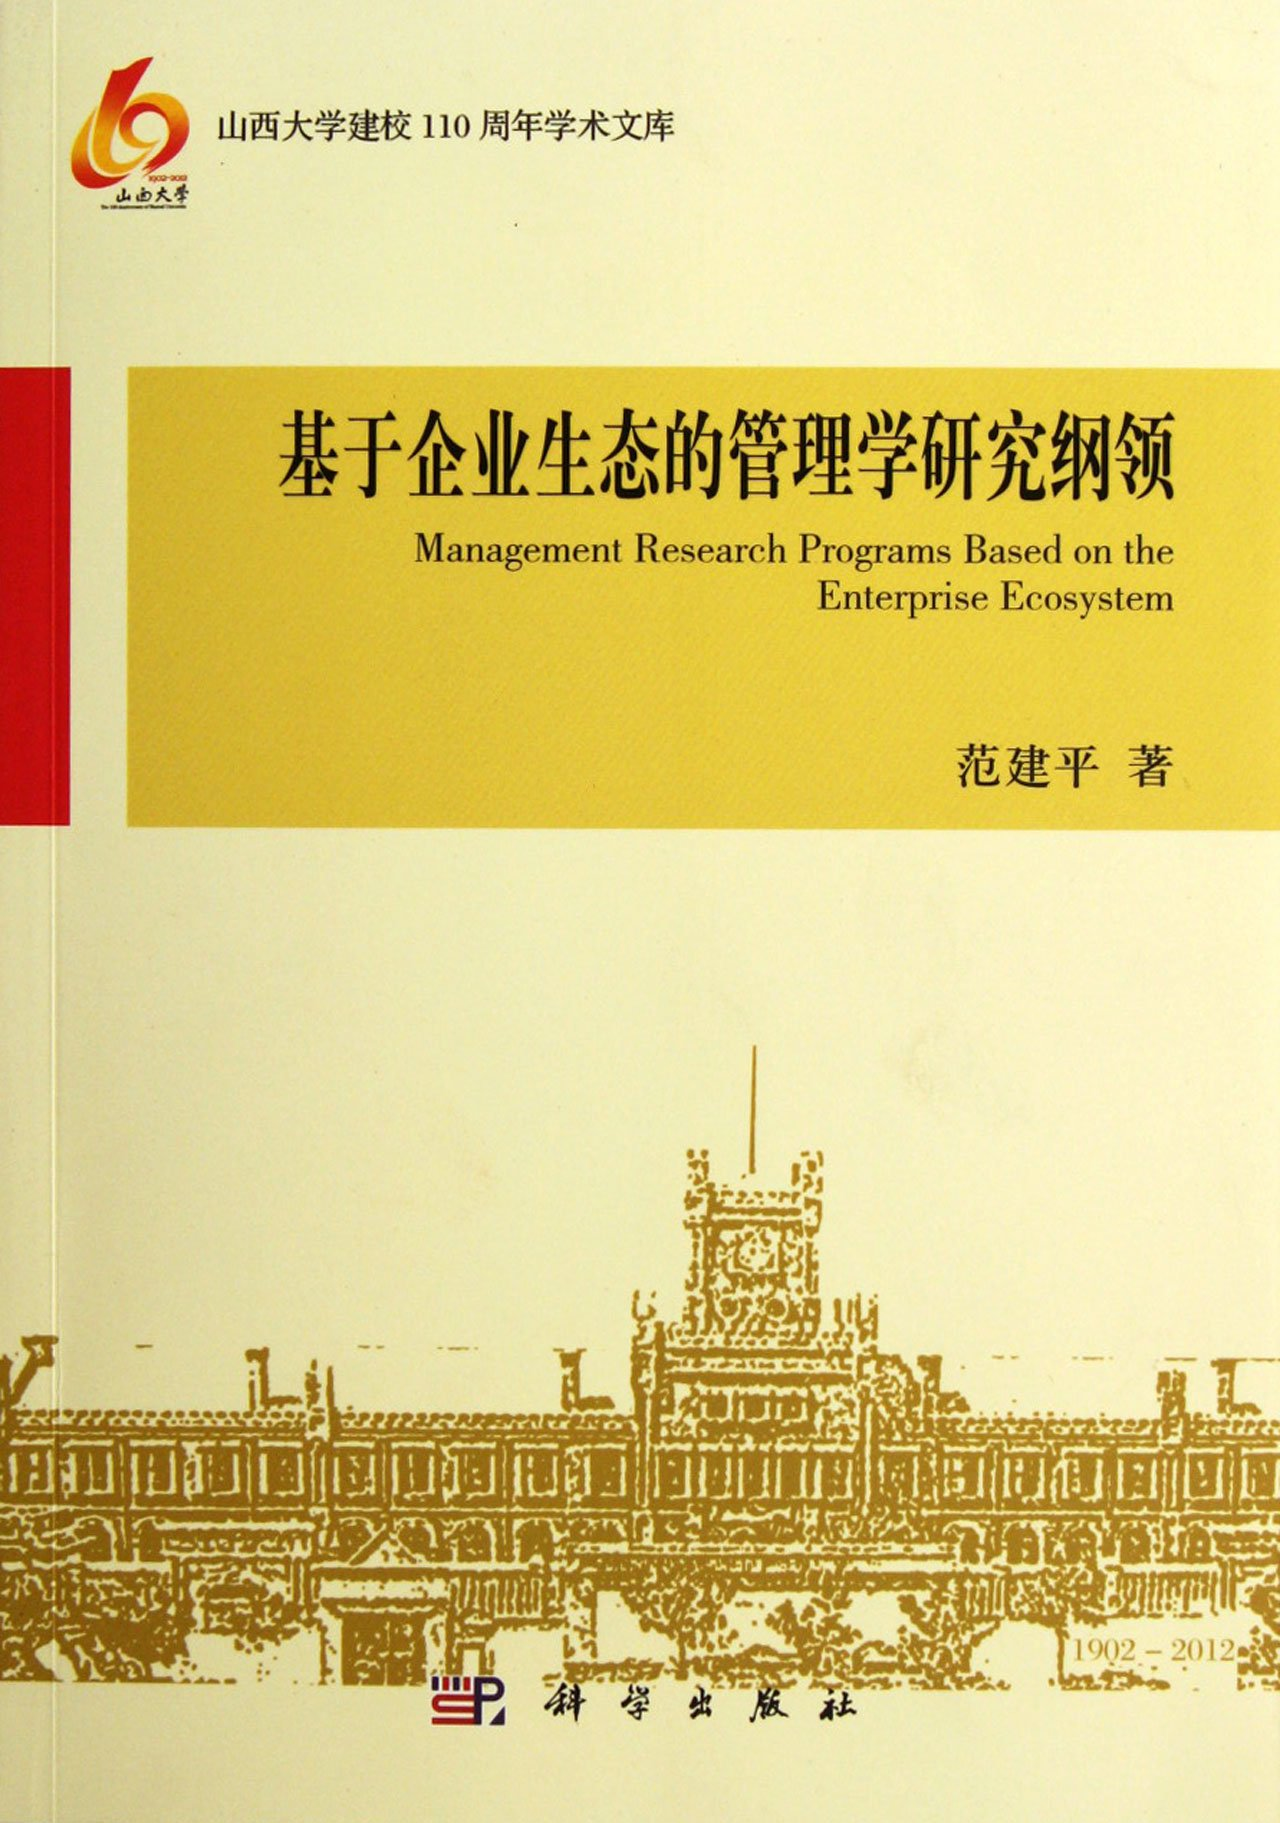 Read Online On Management Research Programs Based on Enterprise Ecosystem (Chinese Edition) PDF